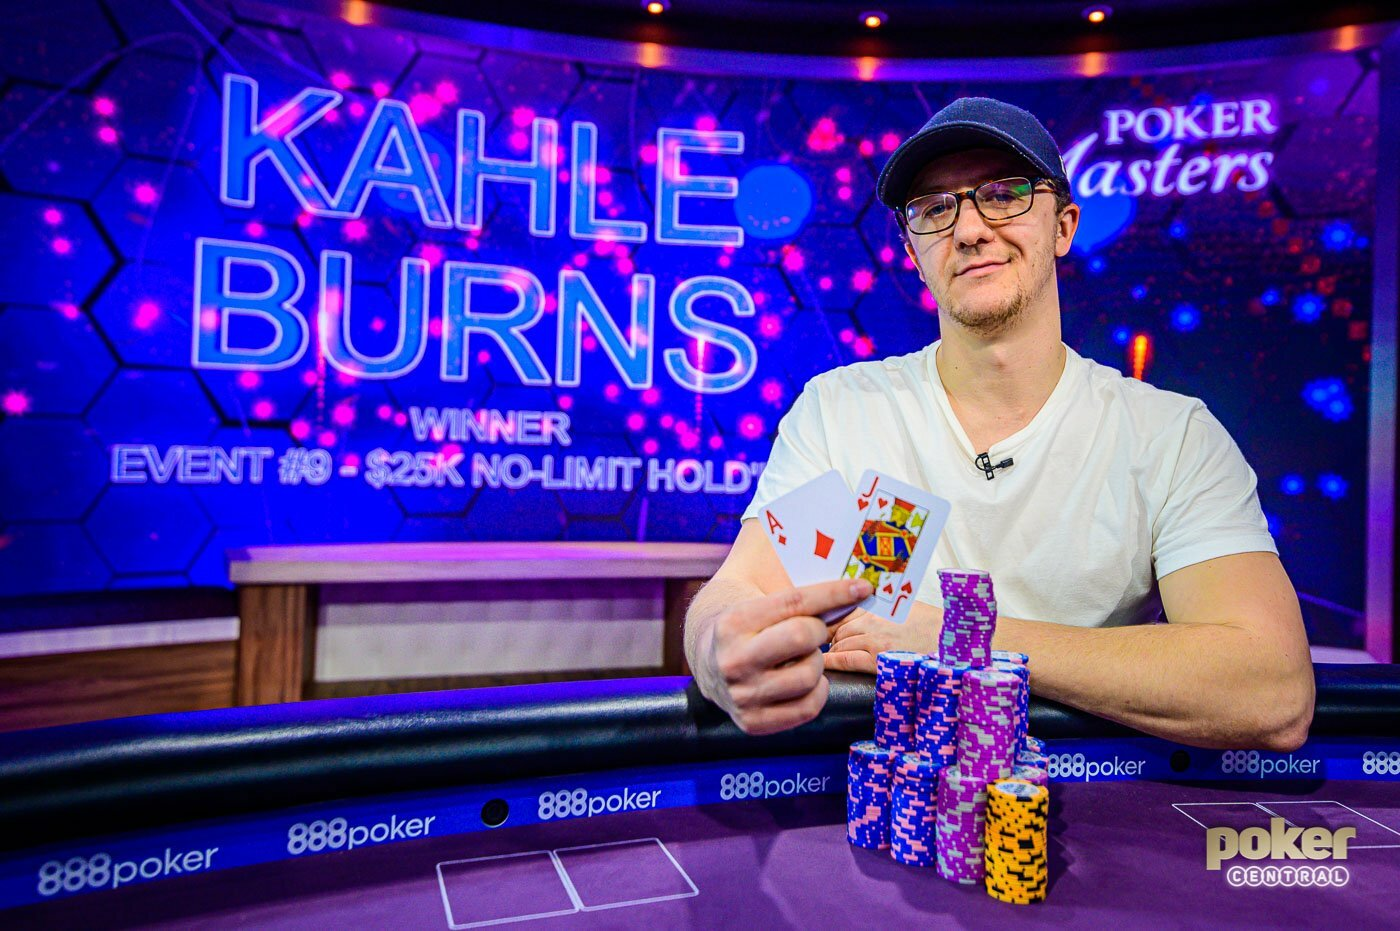 Kahle Burns Wins 2019 Poker Masters Event #9